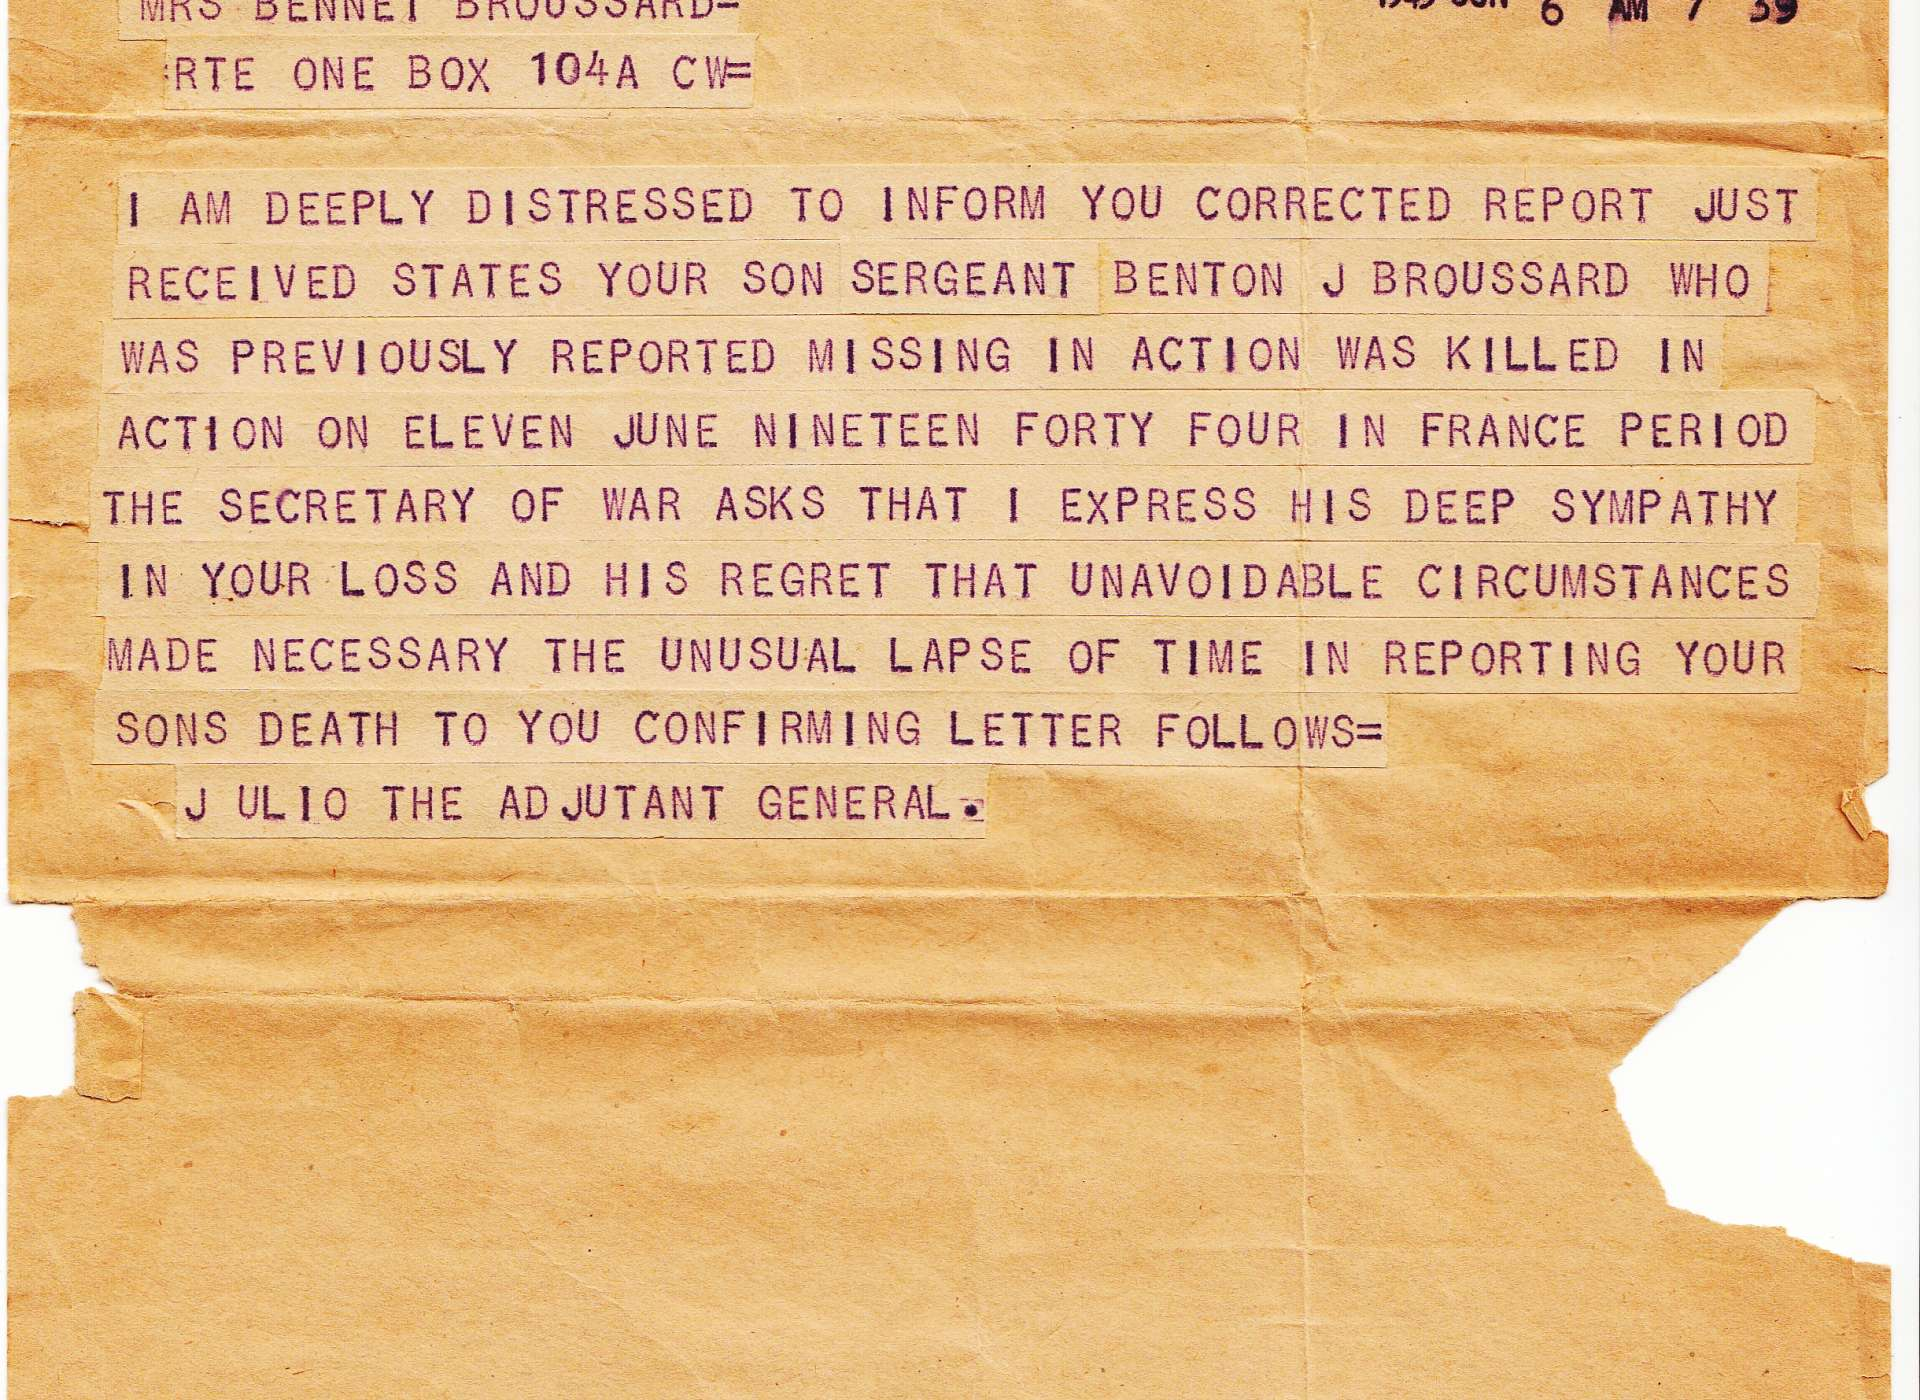 broussard death telegram